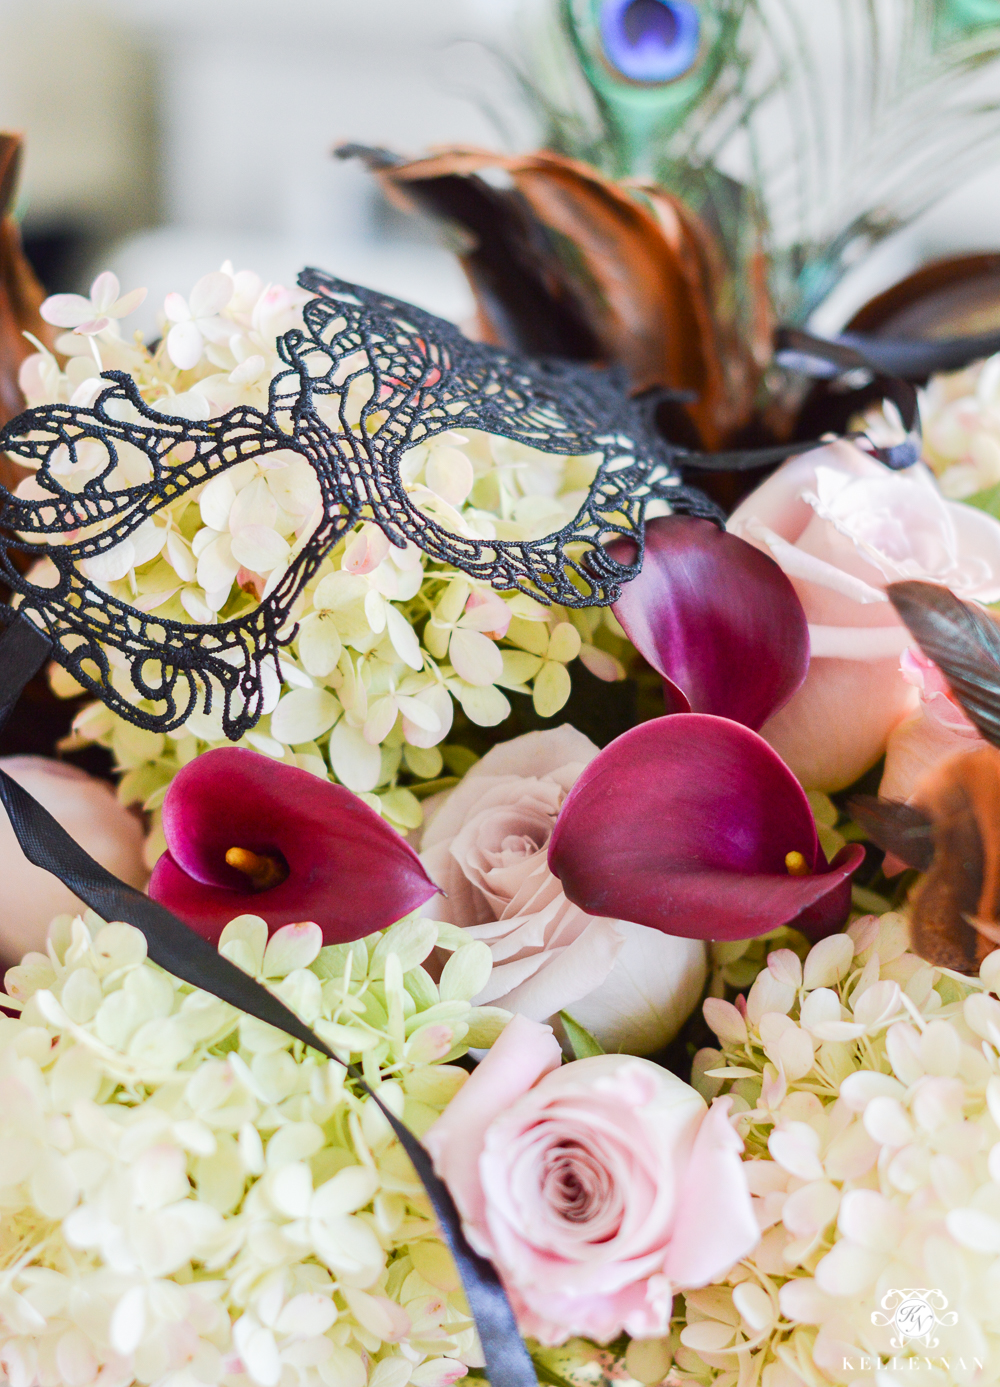 Masquerade Dinner Party for Halloween with Full Table Setting_-floral arrangement